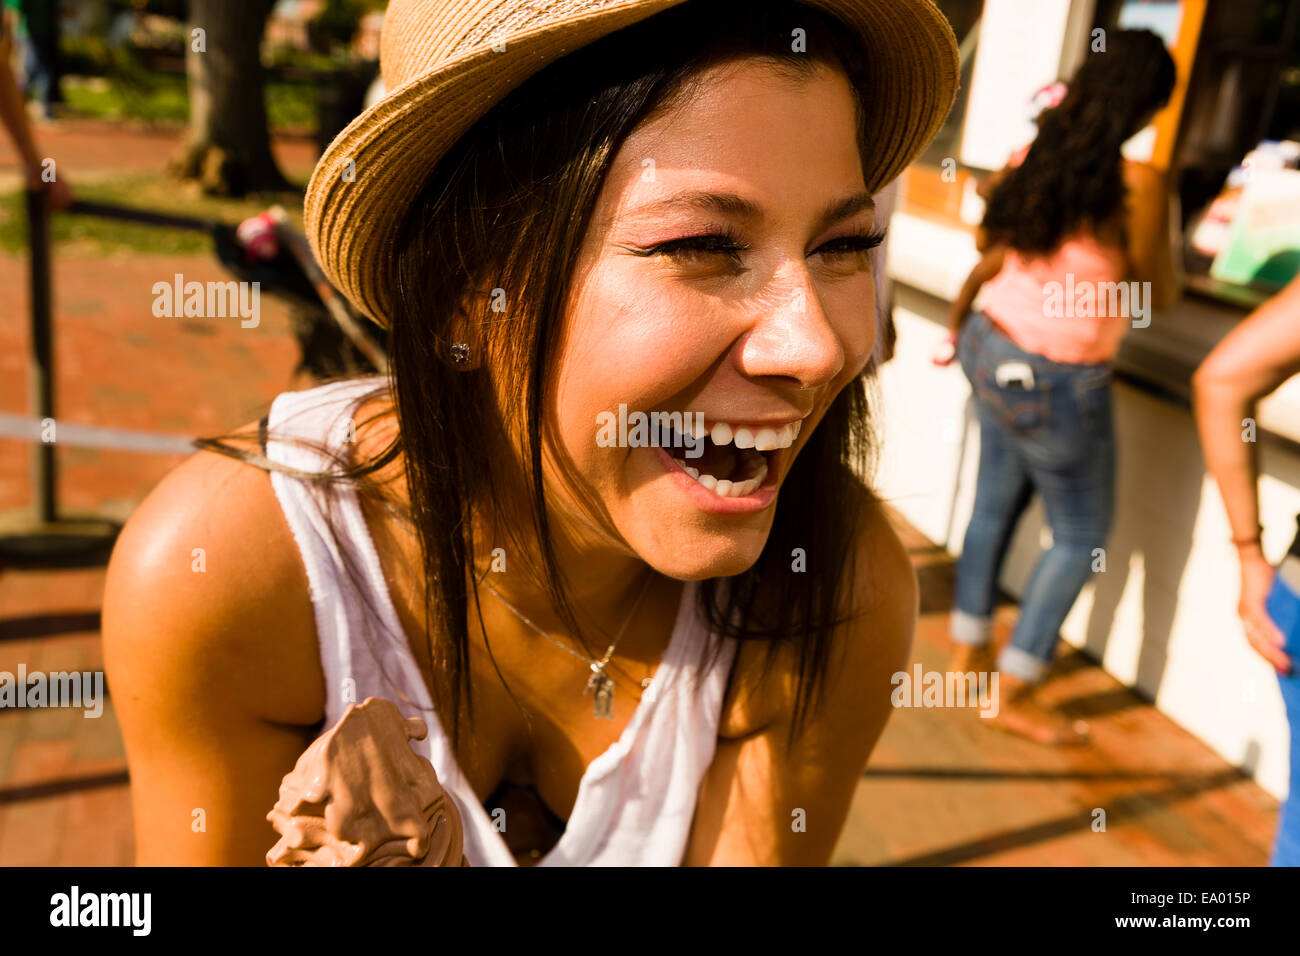 Young woman laughing in park Stock Photo